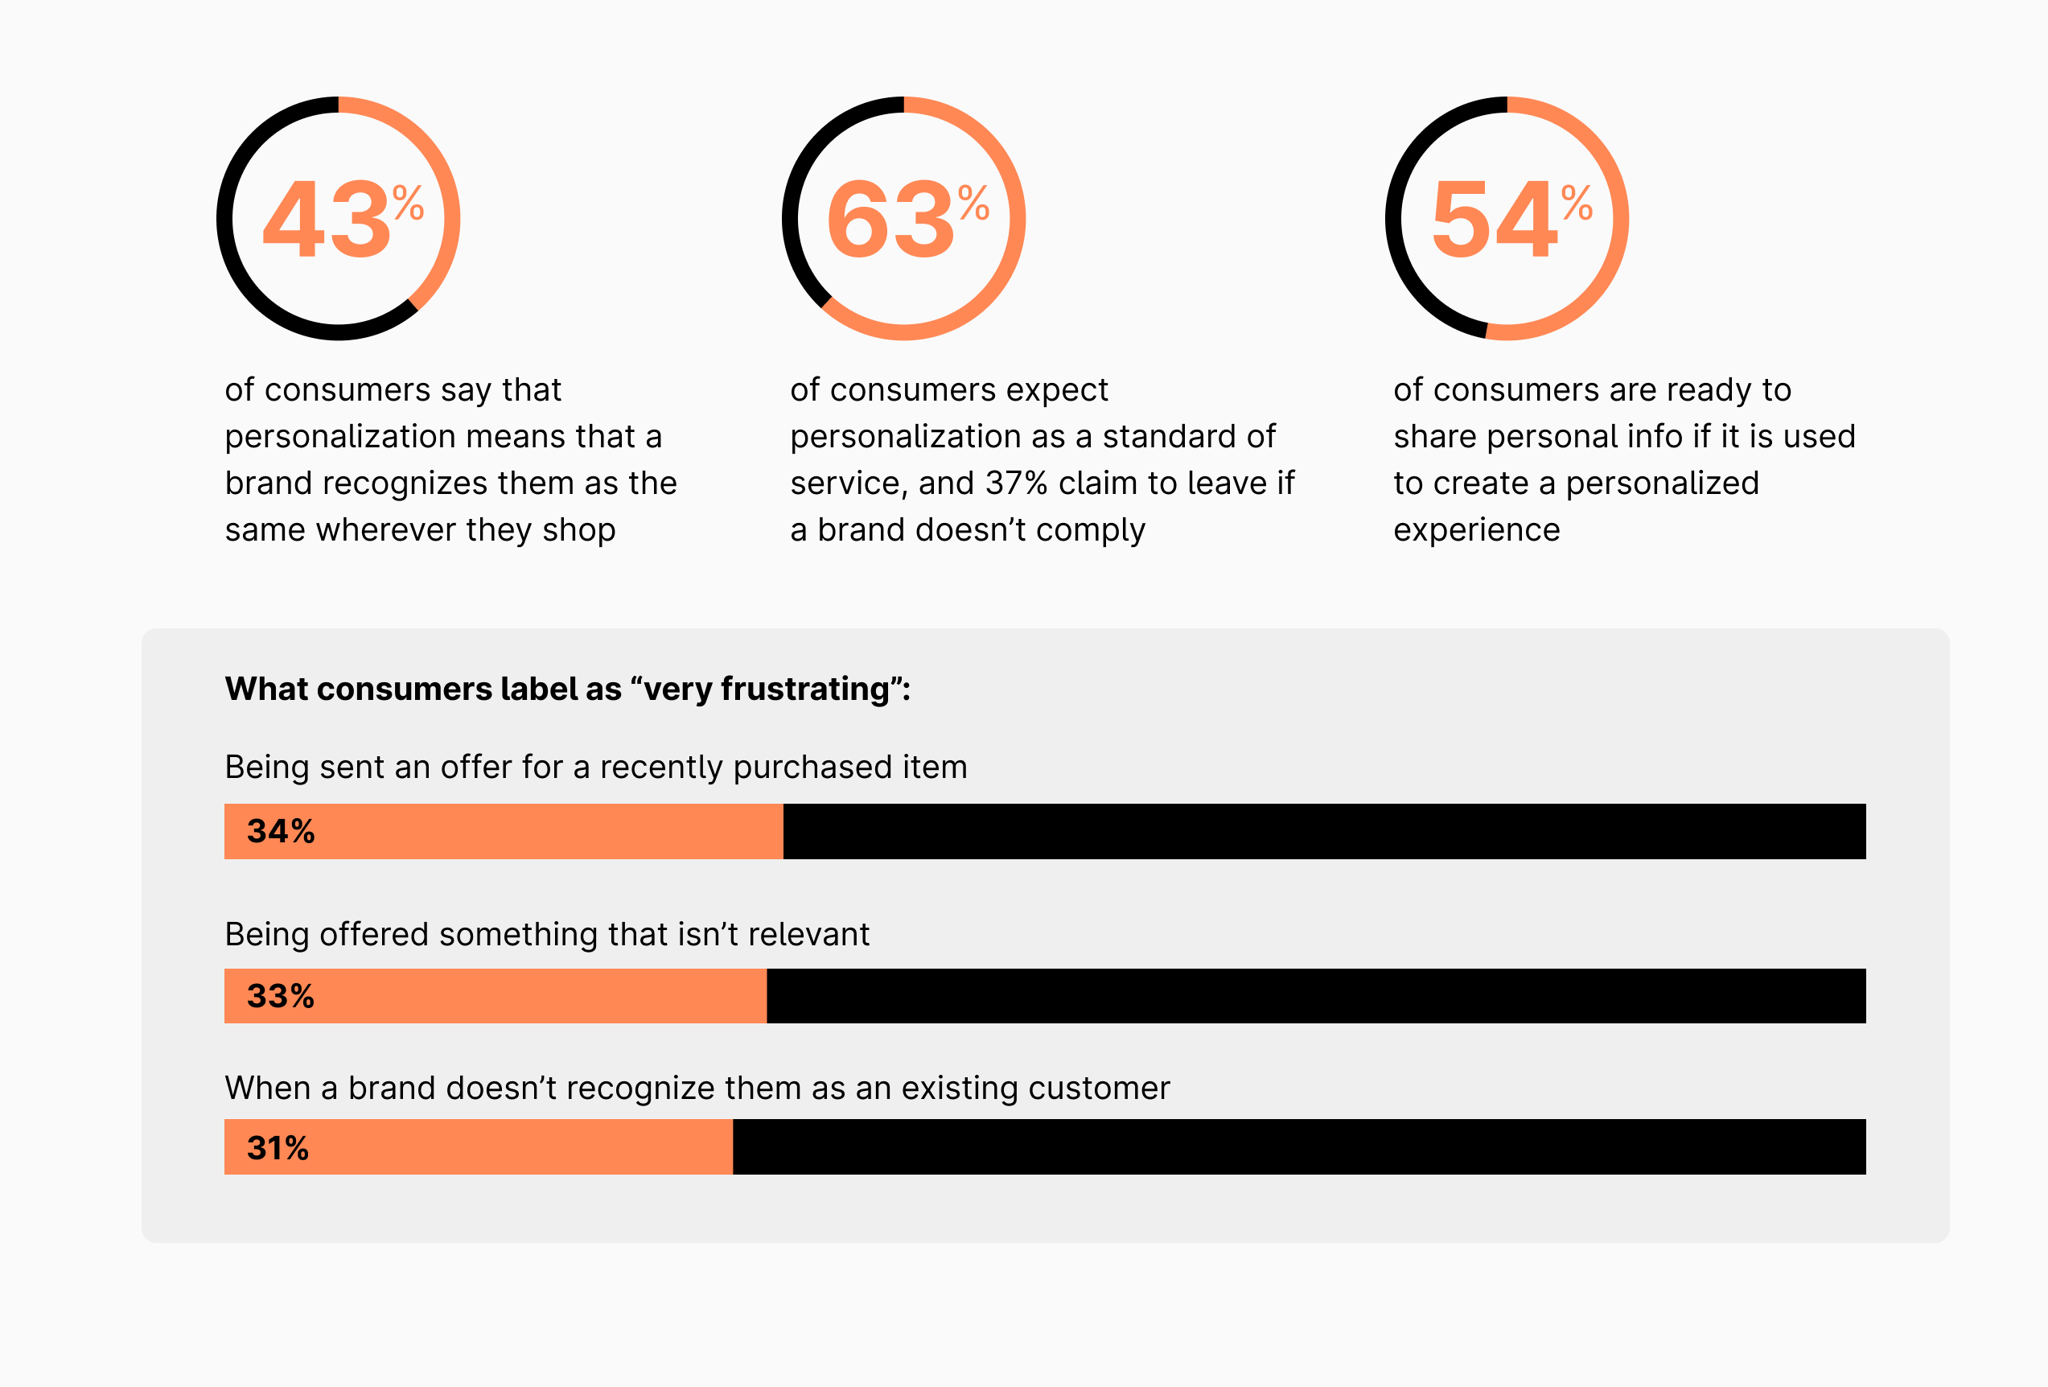 Stats about personalization to improve customer experience in retail